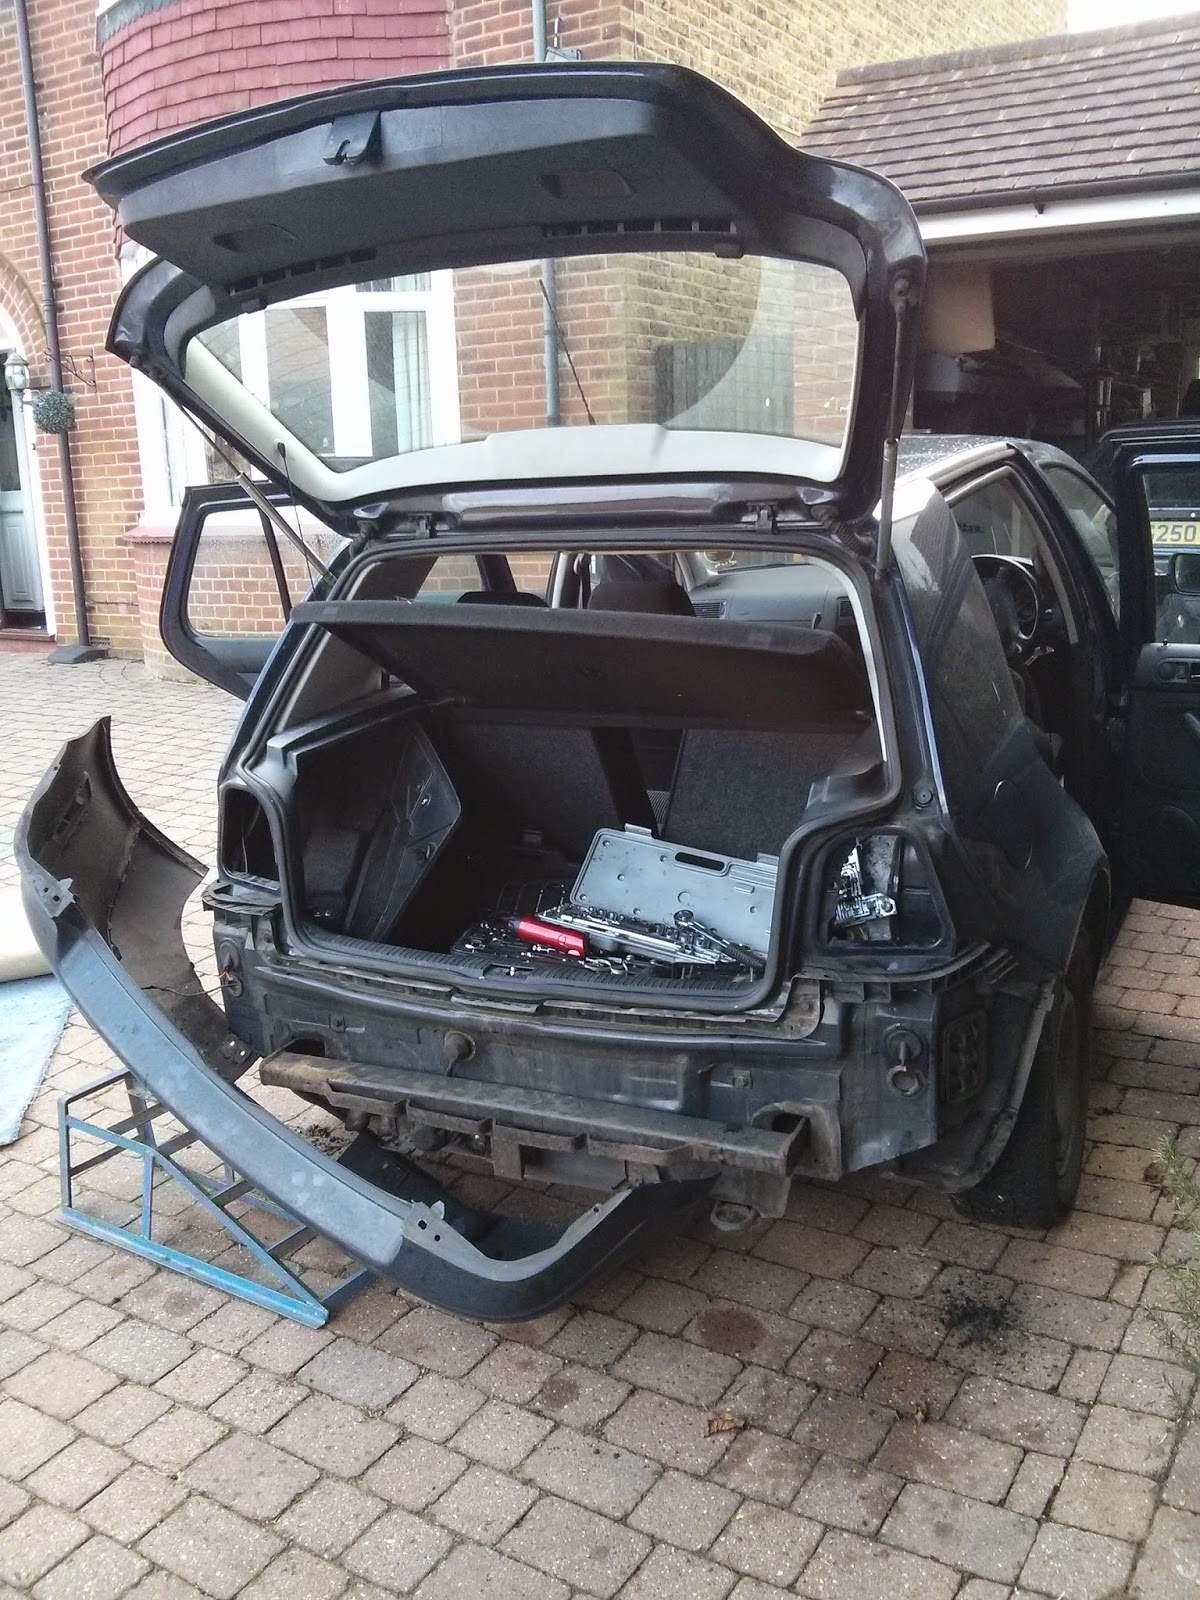 VW Golf MK4 rear bumper removal